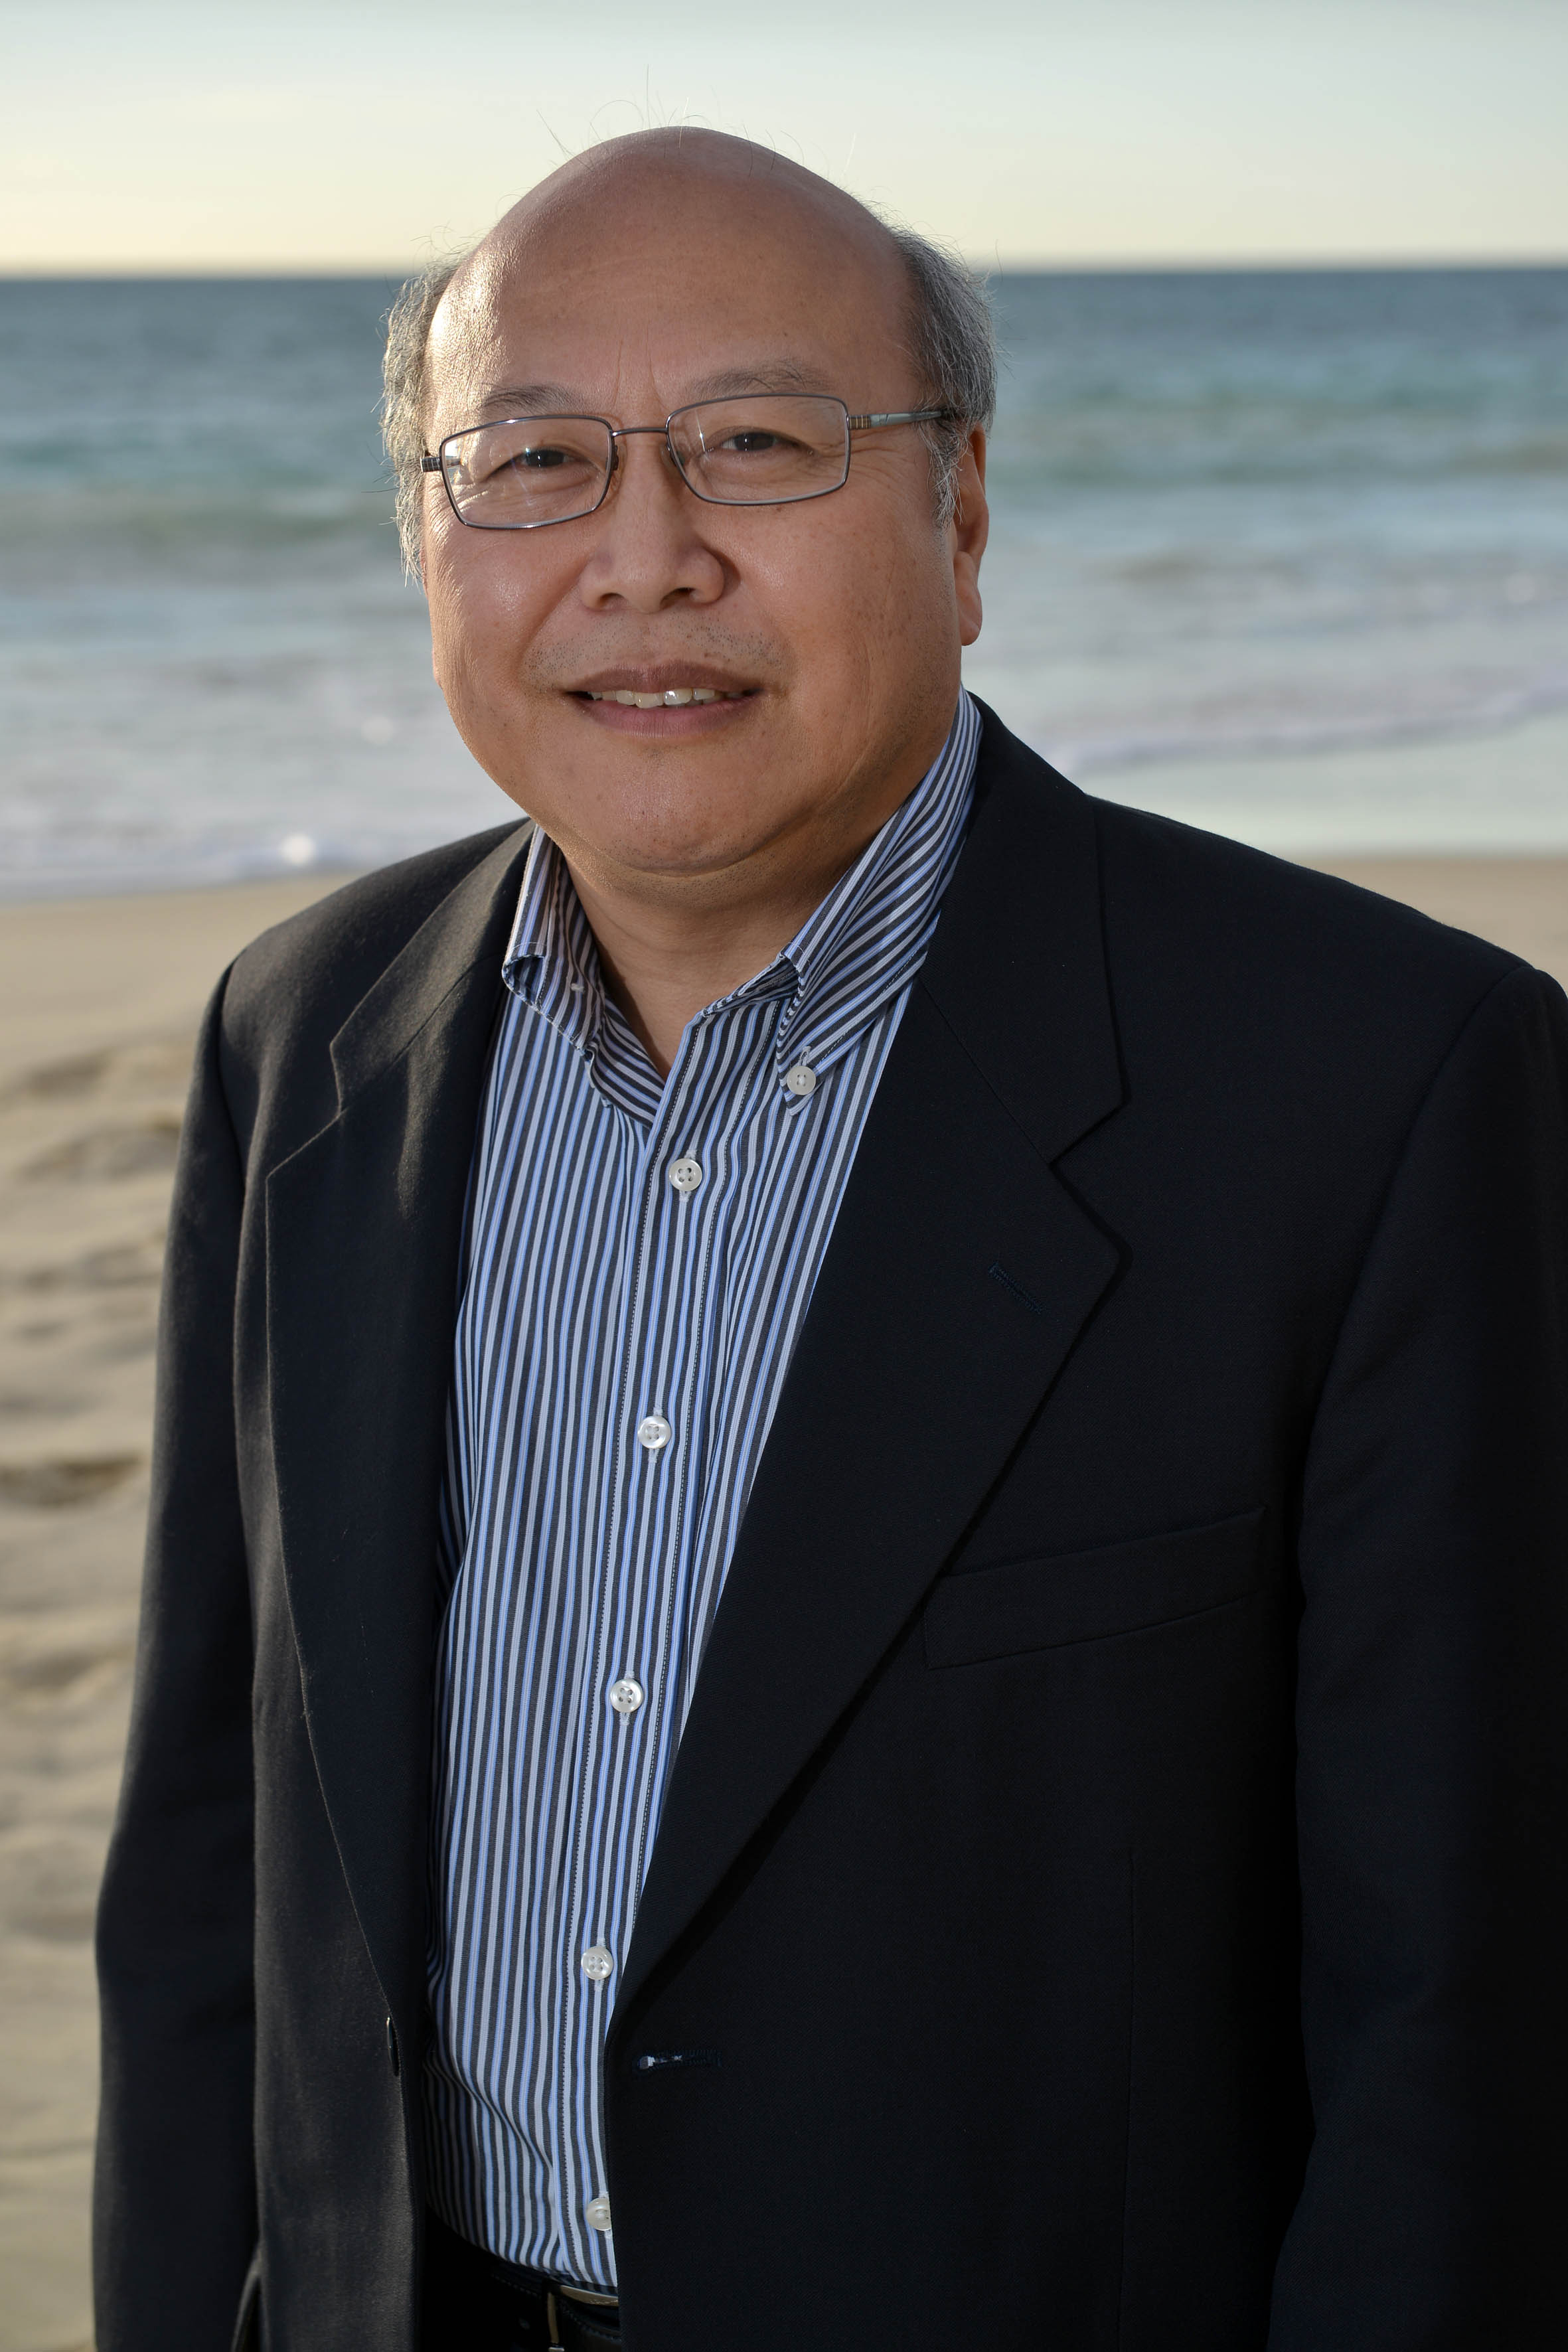 Portrait photo of Dr Ken Lee with beach and ocean as the backdrop.